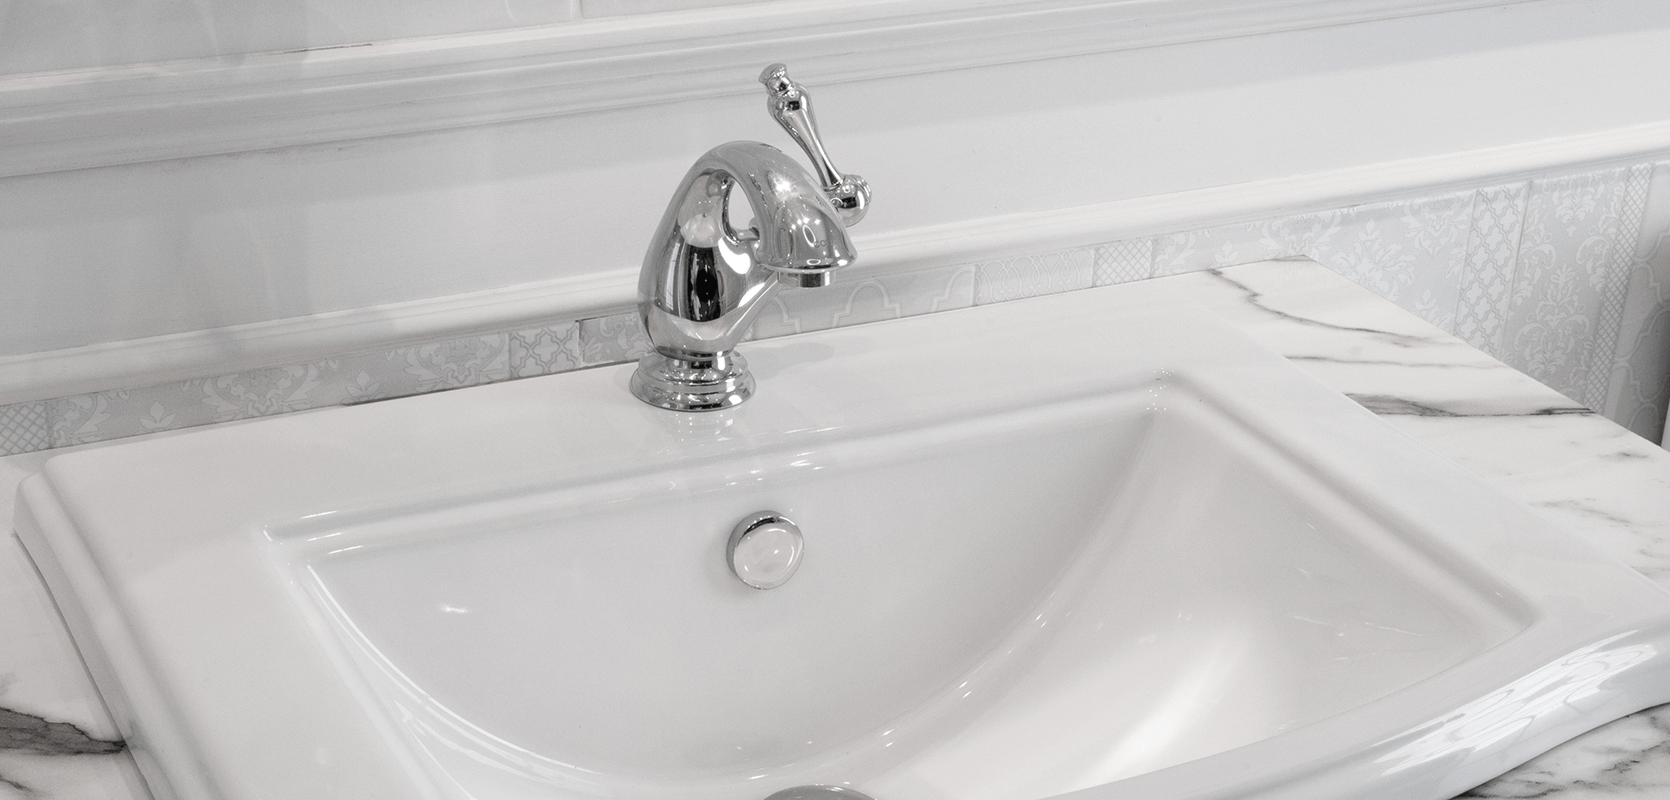 faucets-image